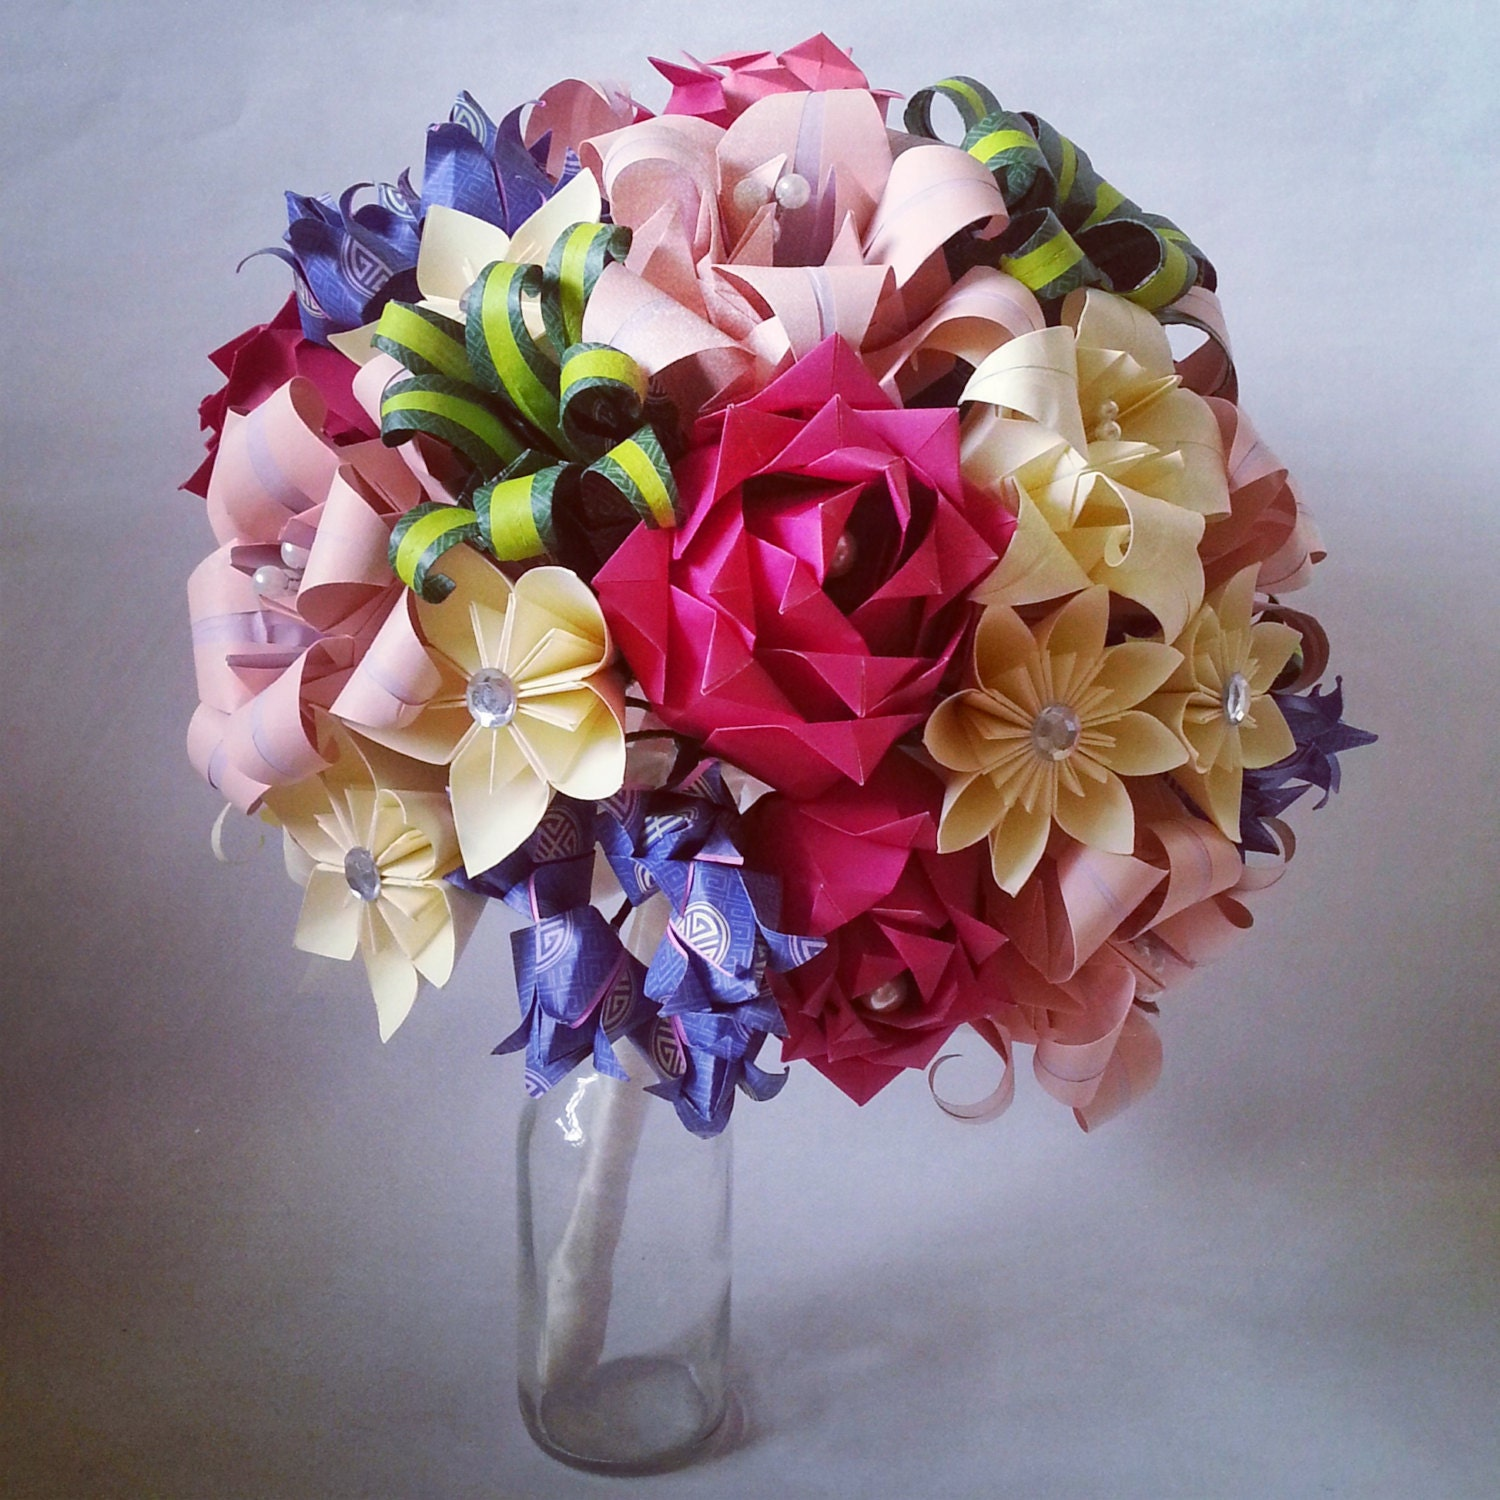 Origami Wedding Flowers: Paper Flower Origami Bridal Bouquet Statement Piece Roses